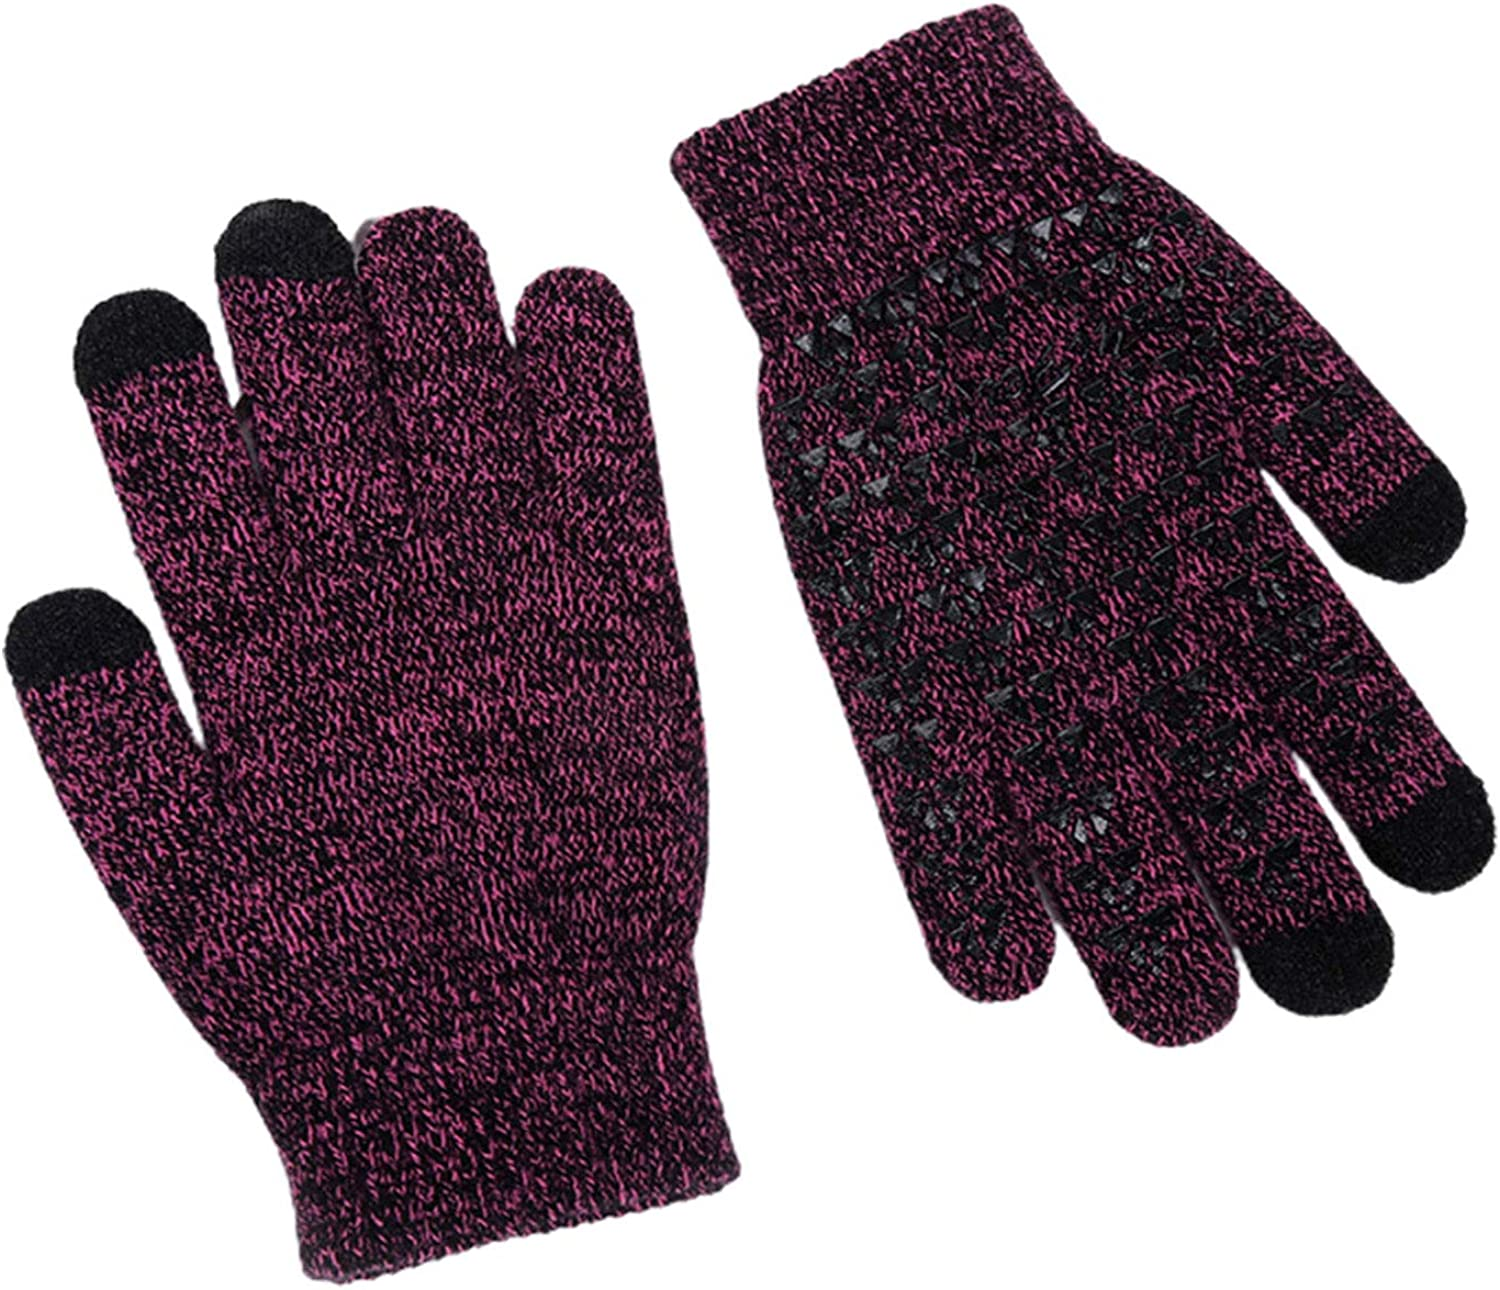 Unisex Winter Gloves Knit Anti-Slip Touchscreen Texting Glove Silicone Warm Thermal Soft Lining Mittens